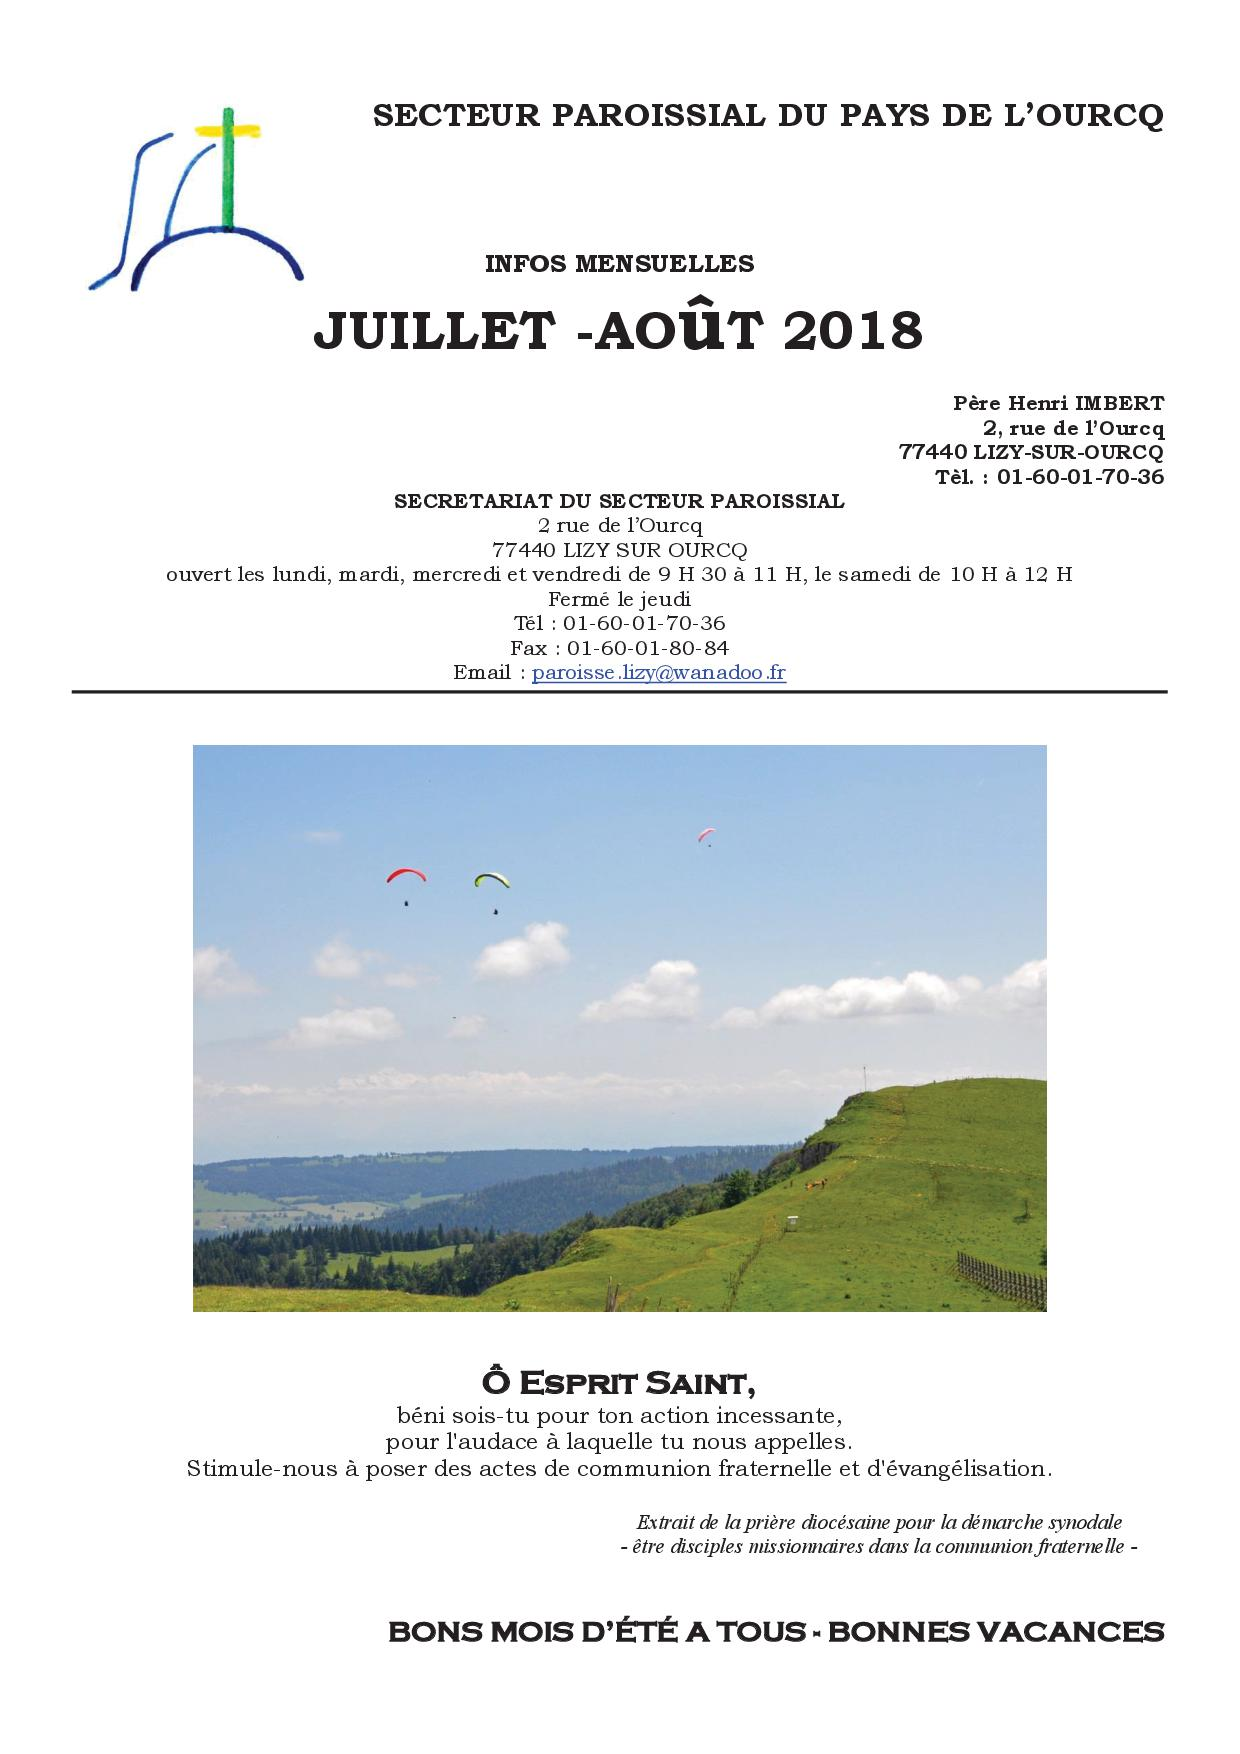 LsO feuille 8 juillet aout 2018-1